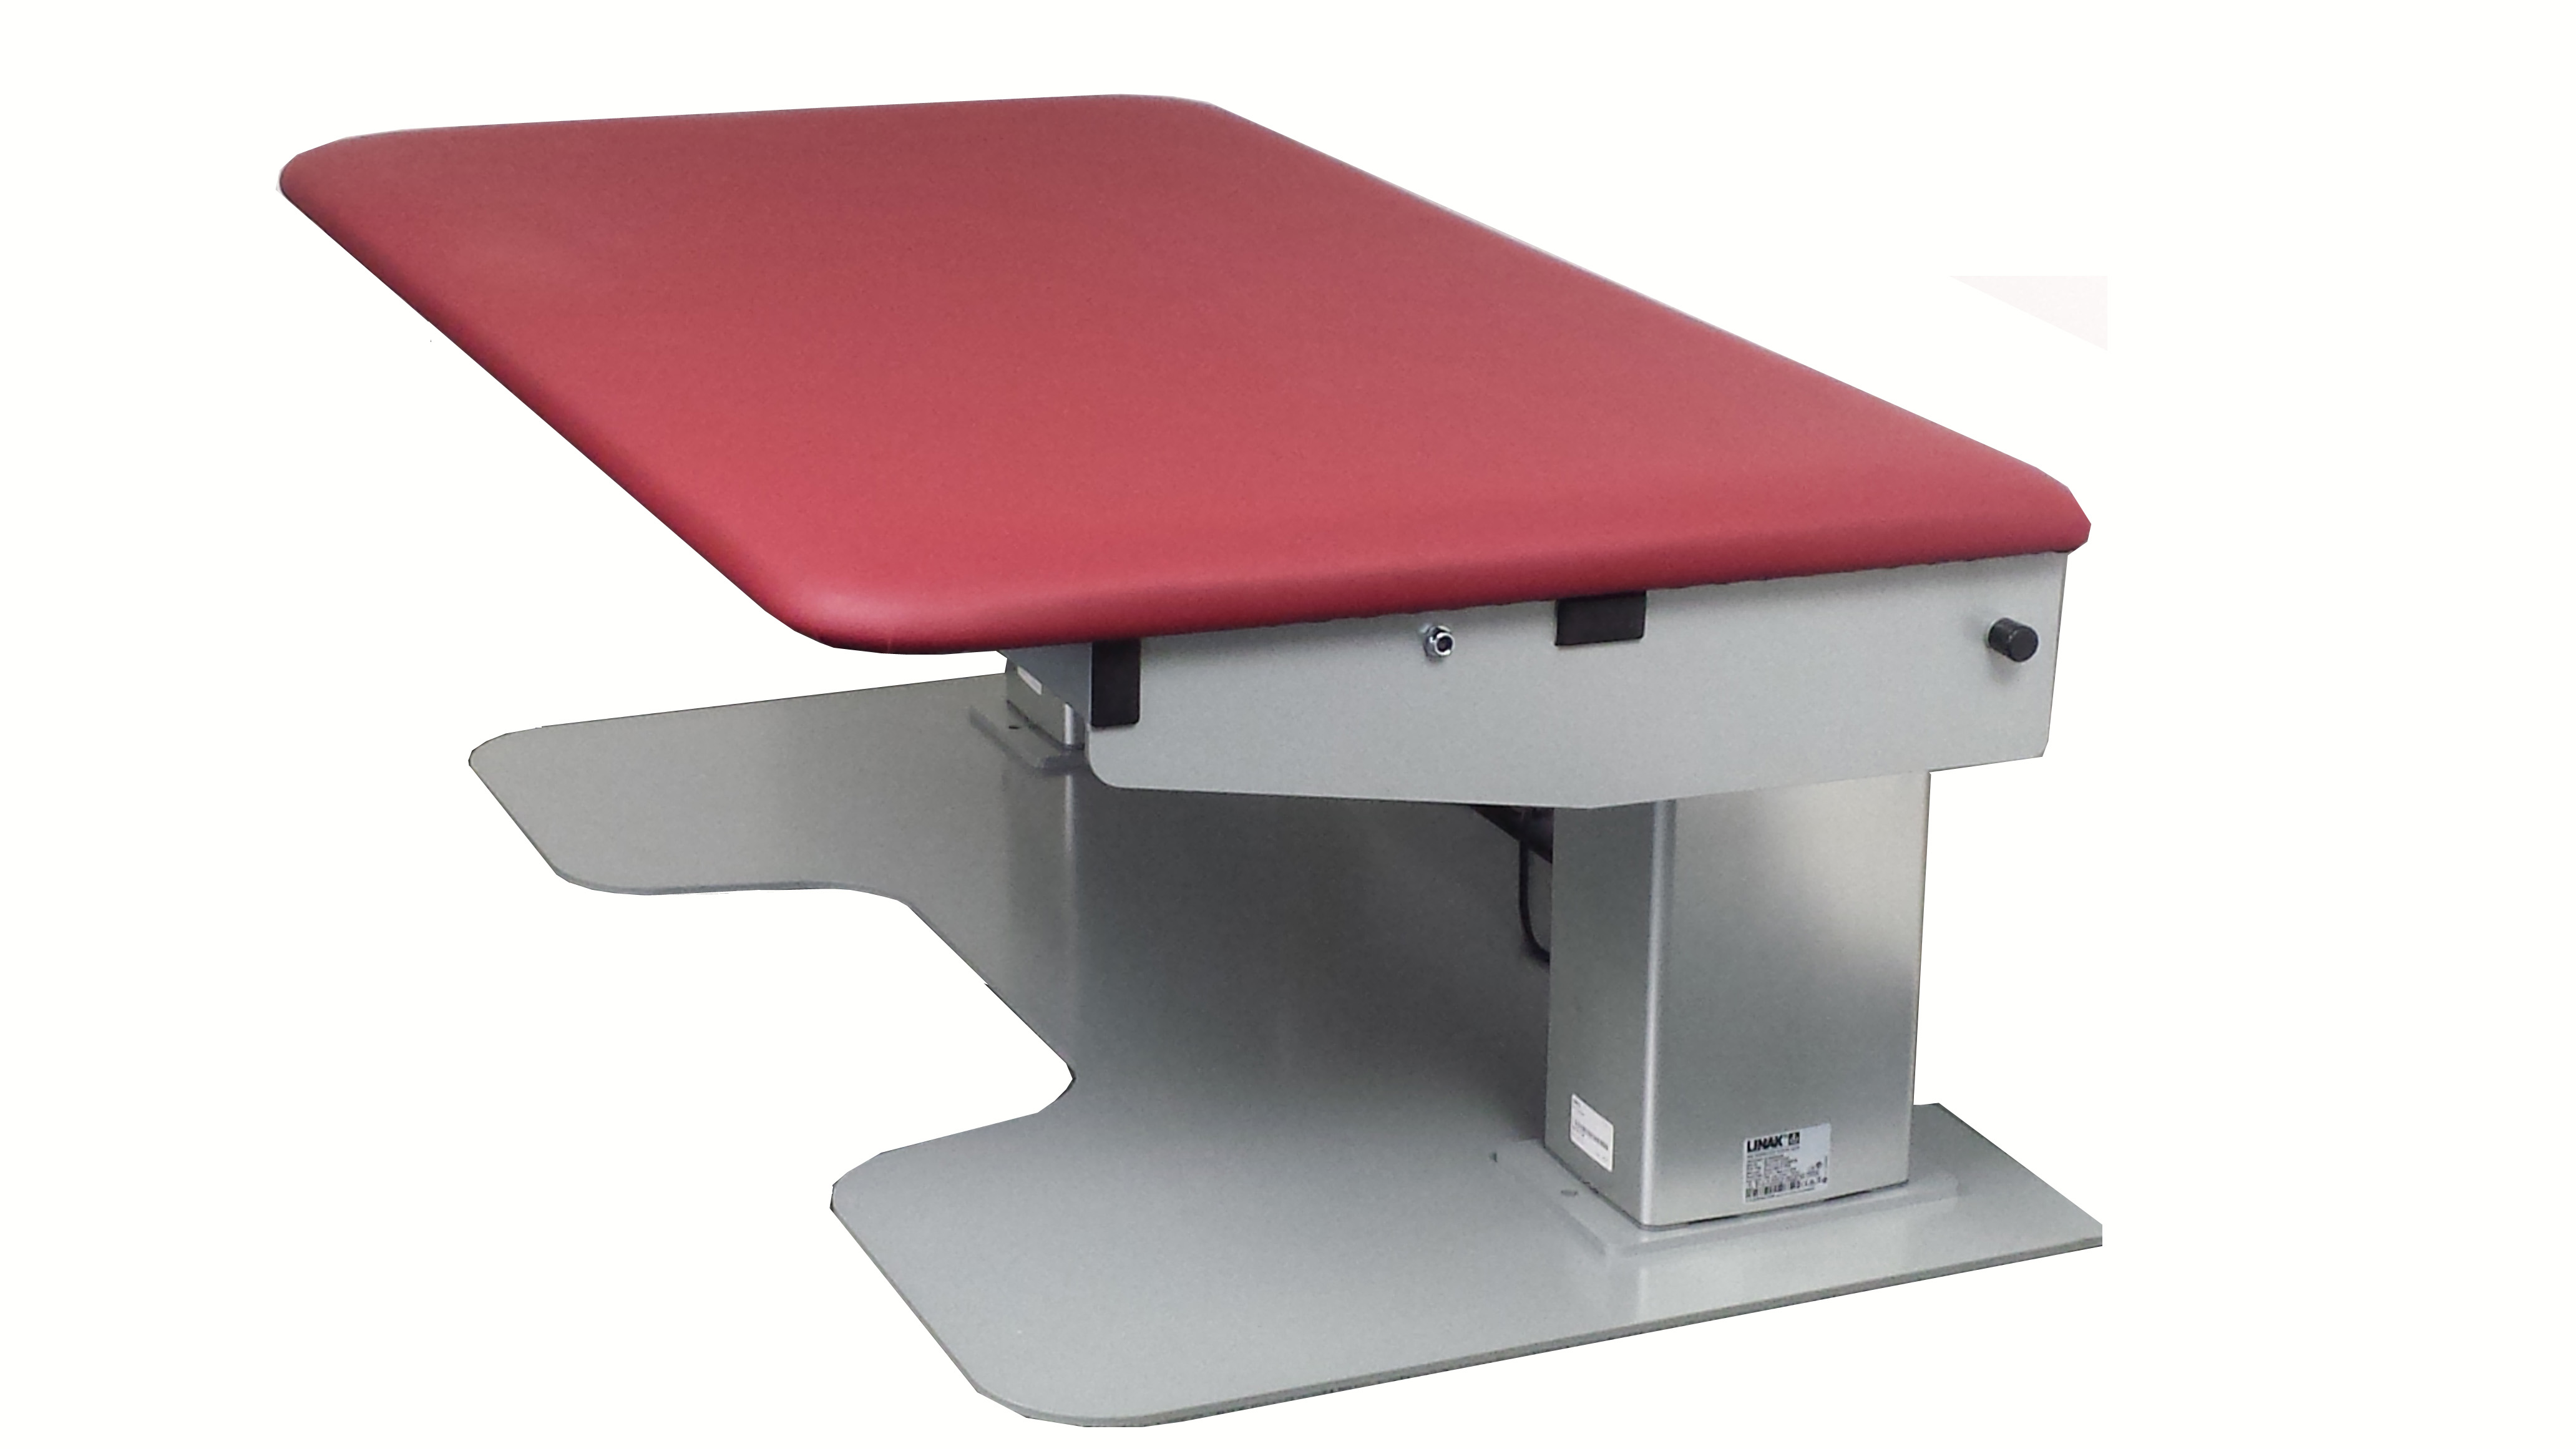 Abco health care space saver change table for Html table spacing